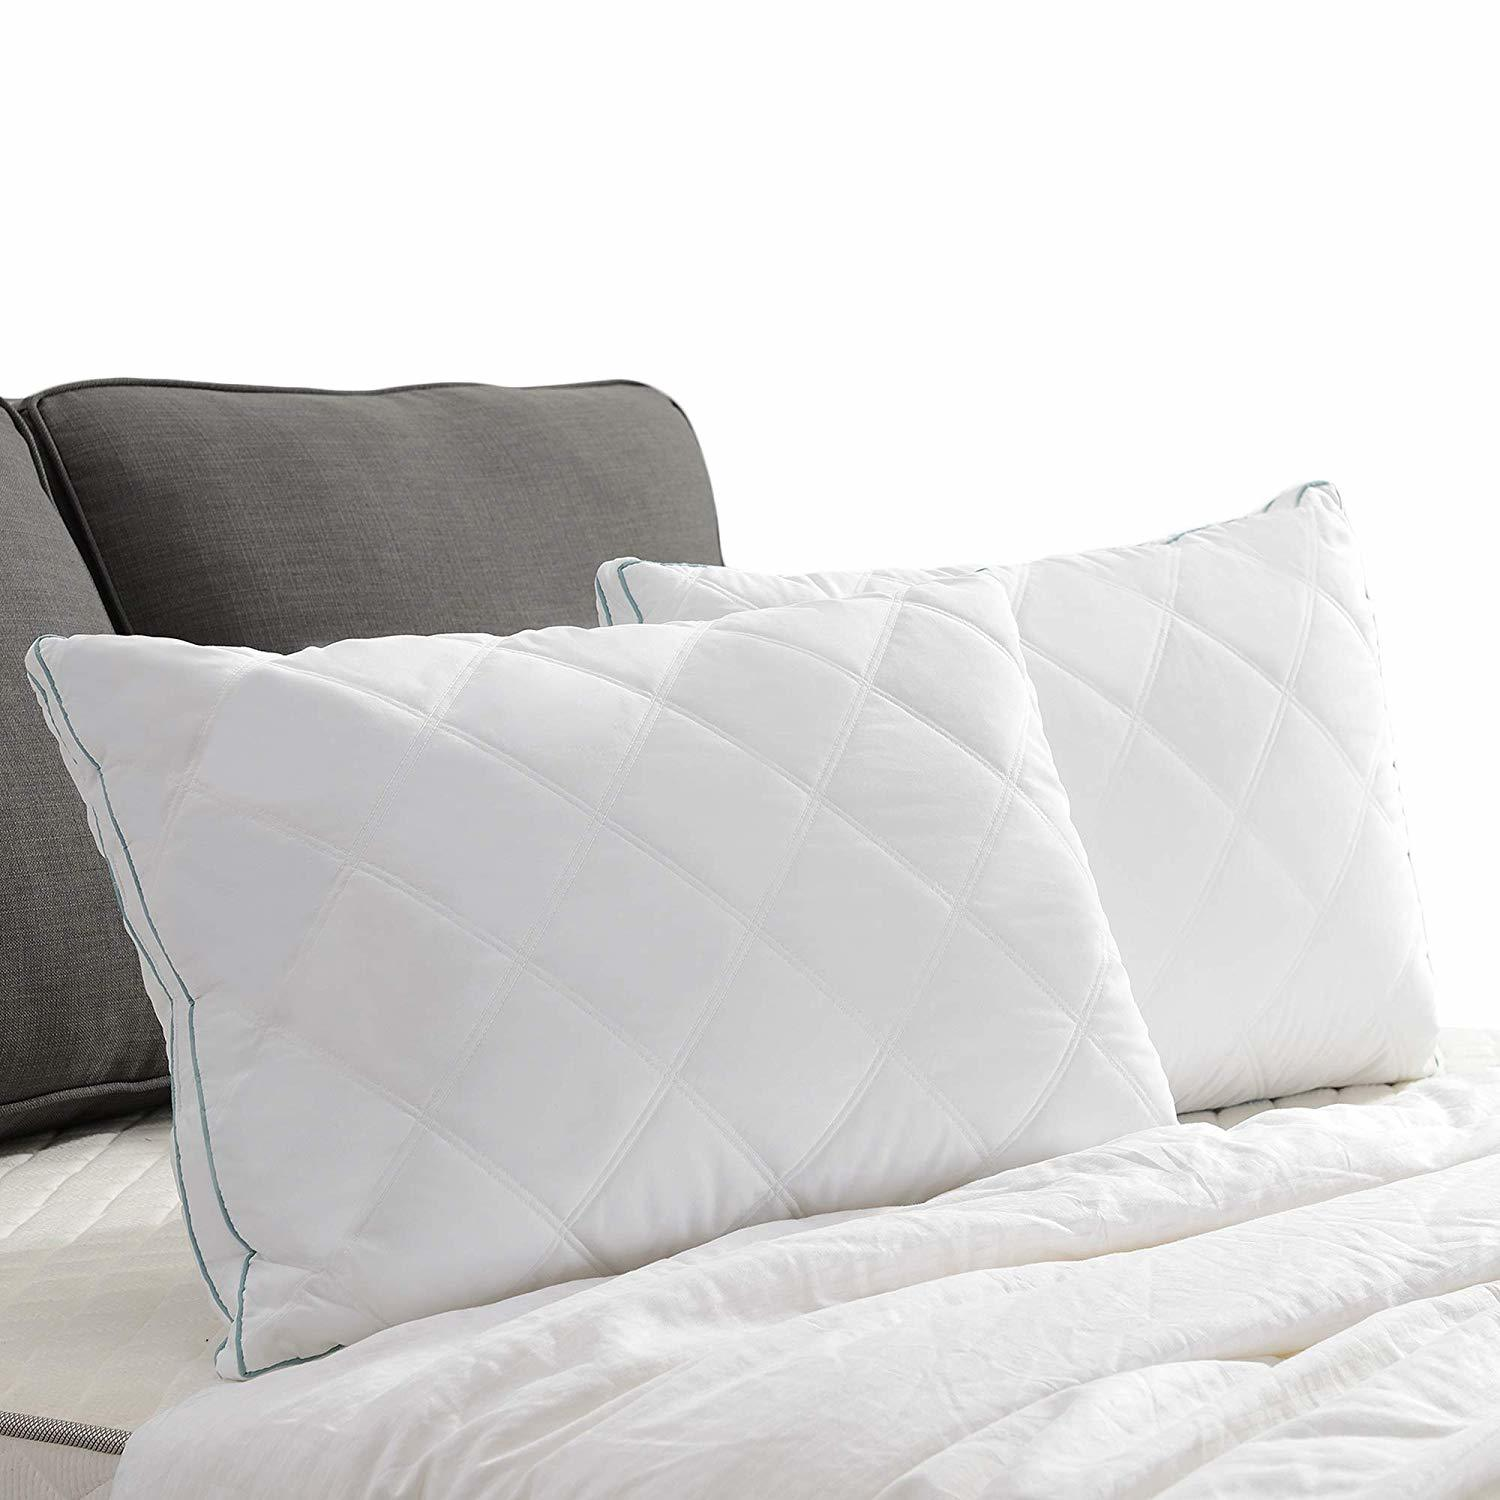 Basic Beyond Feather Down Pillow - Double Diamond Desigen Gusseted Soft Quilted Bed Pillow